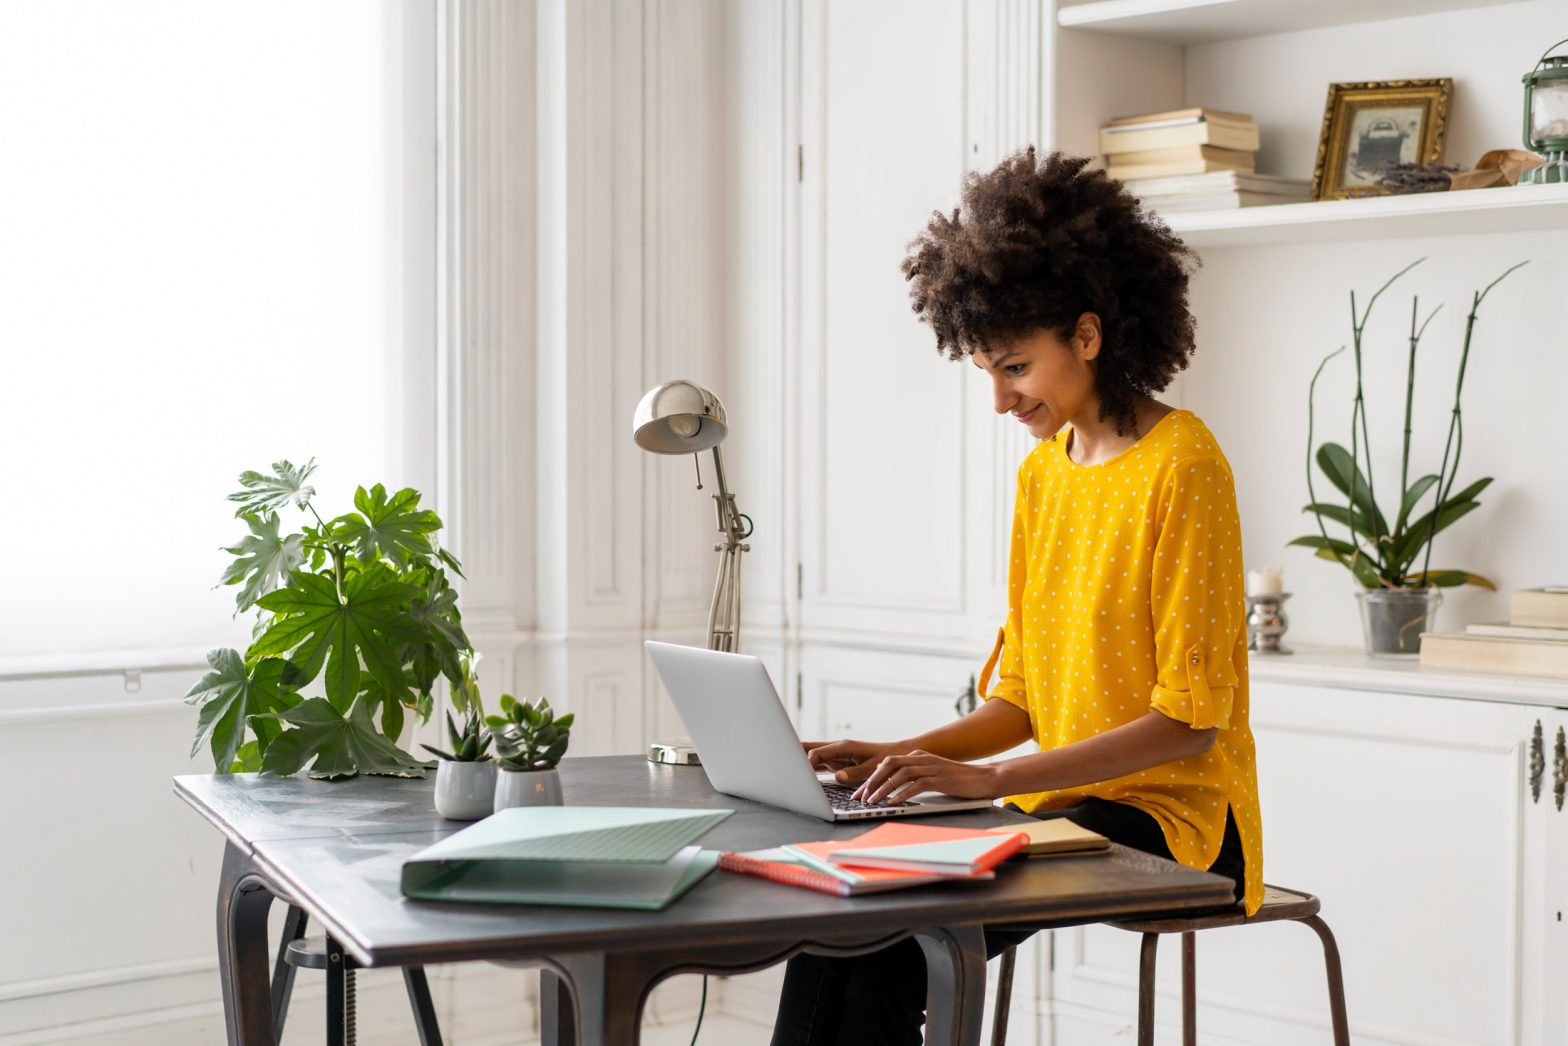 5 Tips For a Healthy and Productive Home Office